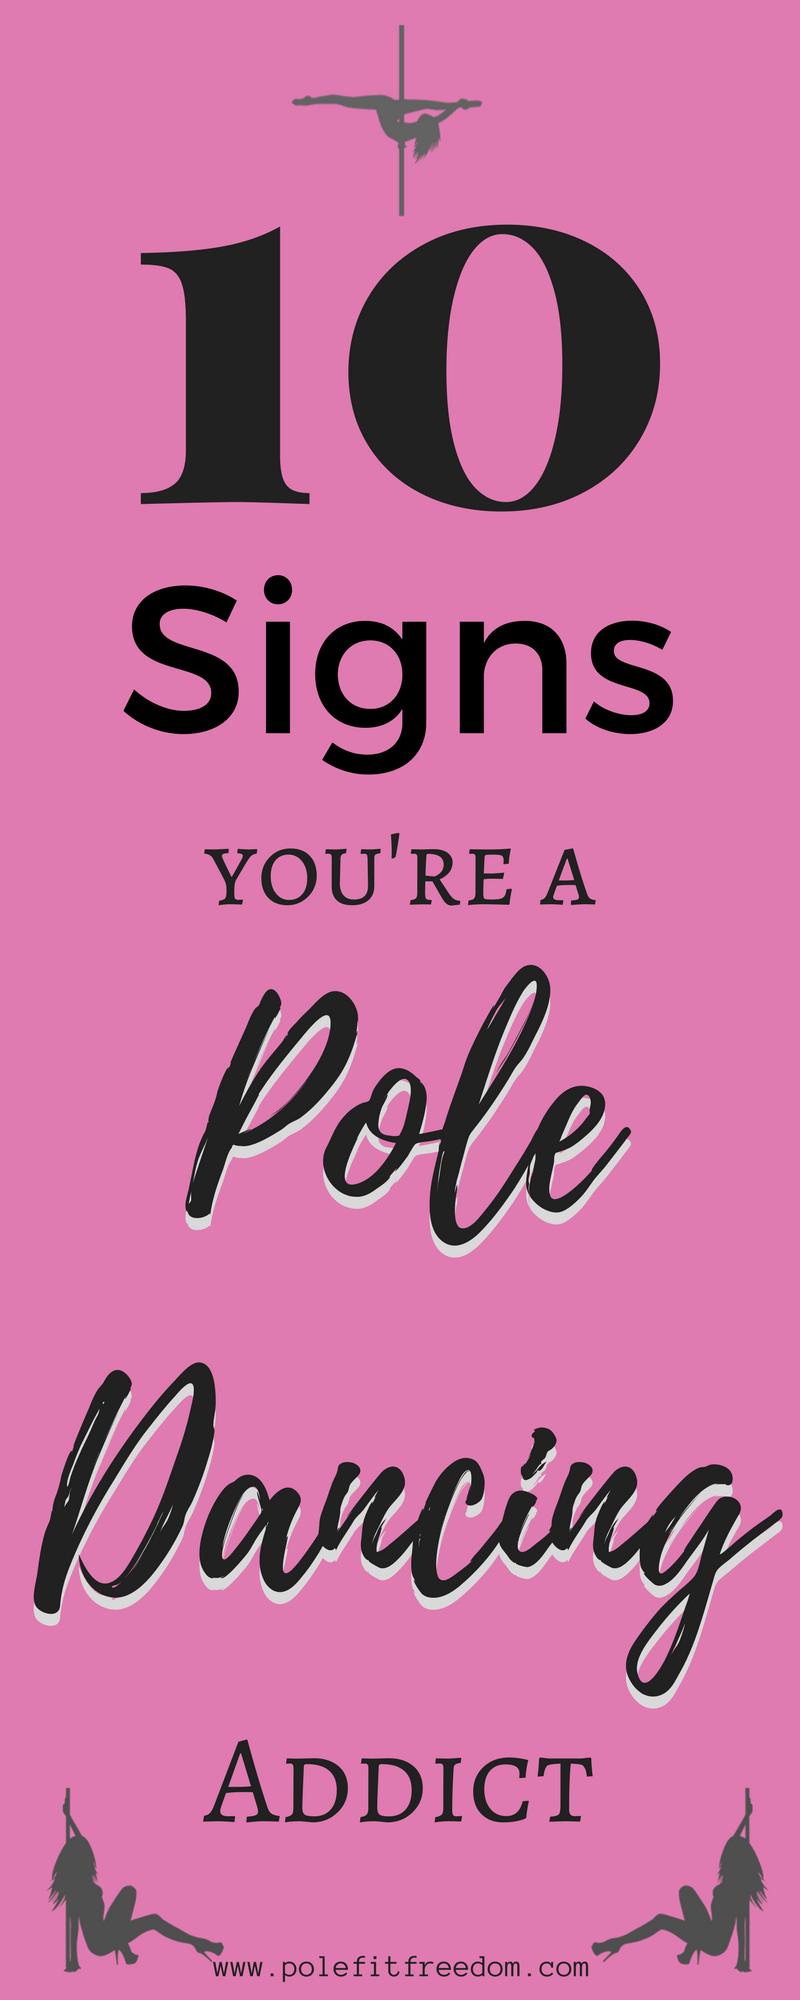 10 signs you're a pole addict | Pole Dancing | Pole Fitness Inspiration #PoleDancing #PoleFitness #PoleAddict